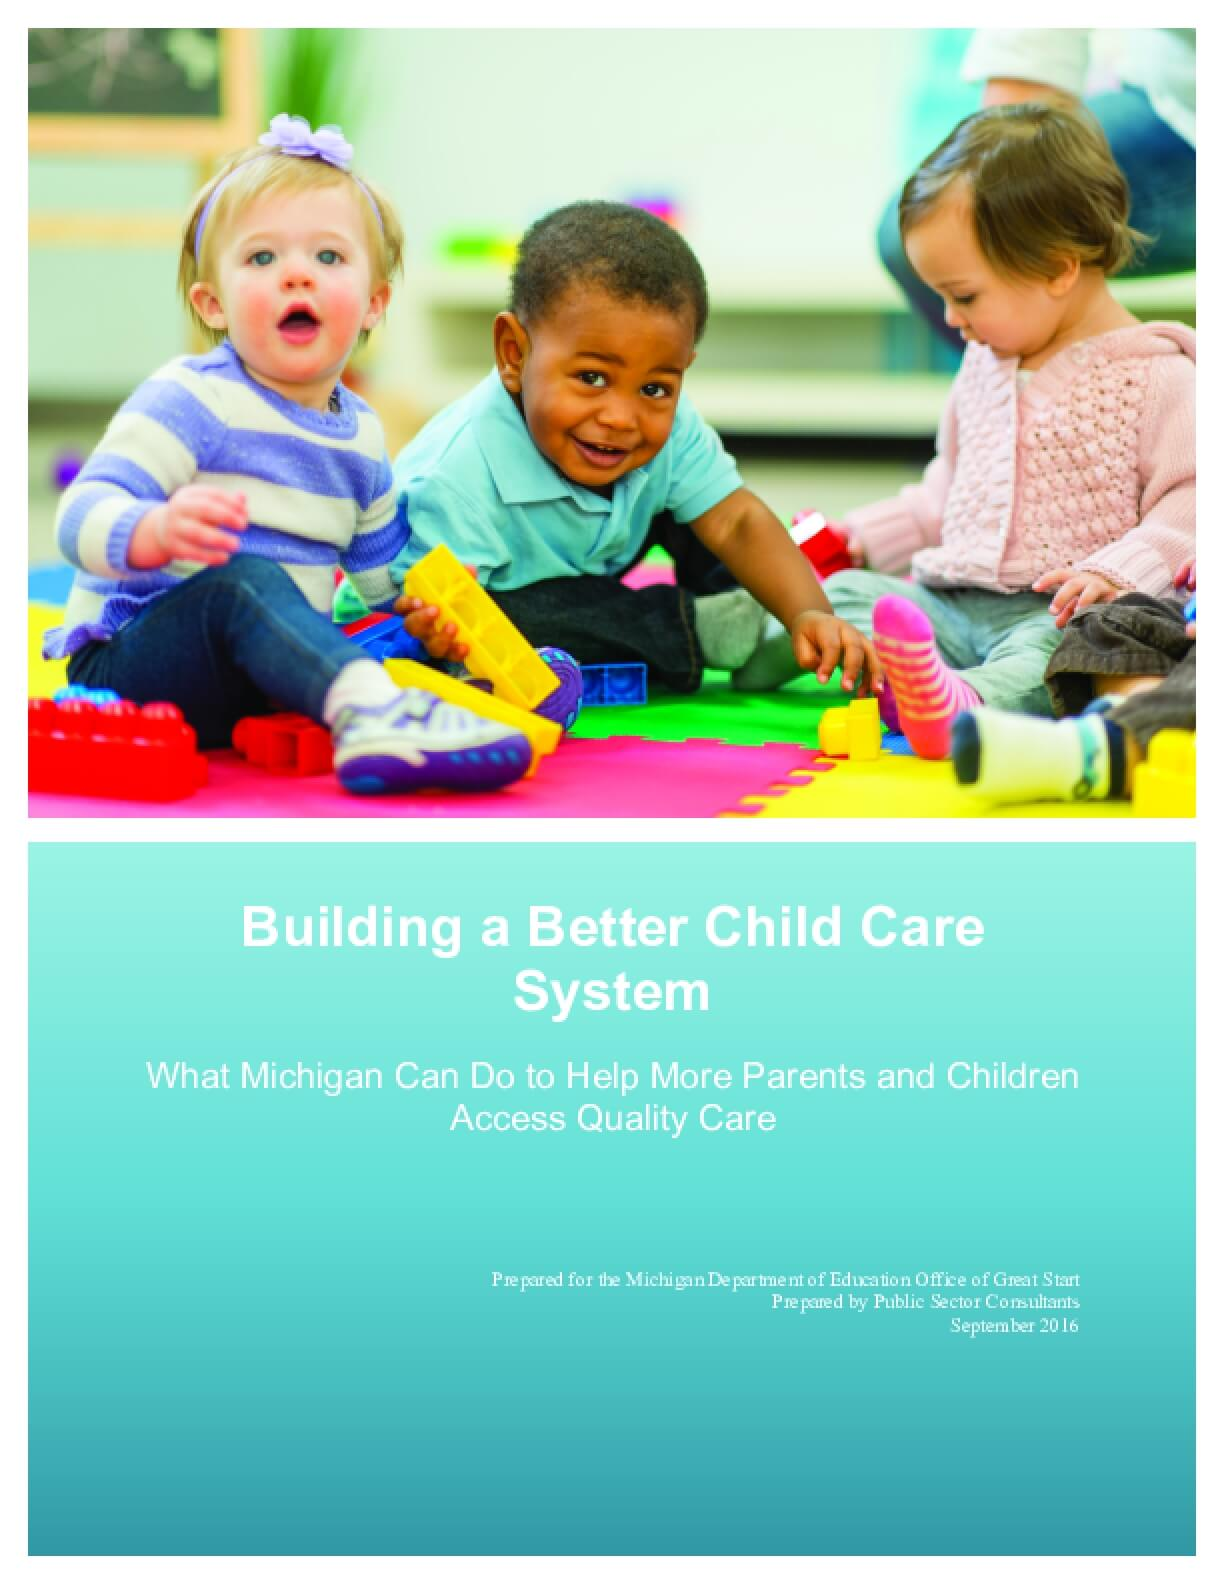 Building a Better Child Care System: What Michigan Can Do to Help More Parents and Children Access Quality Care